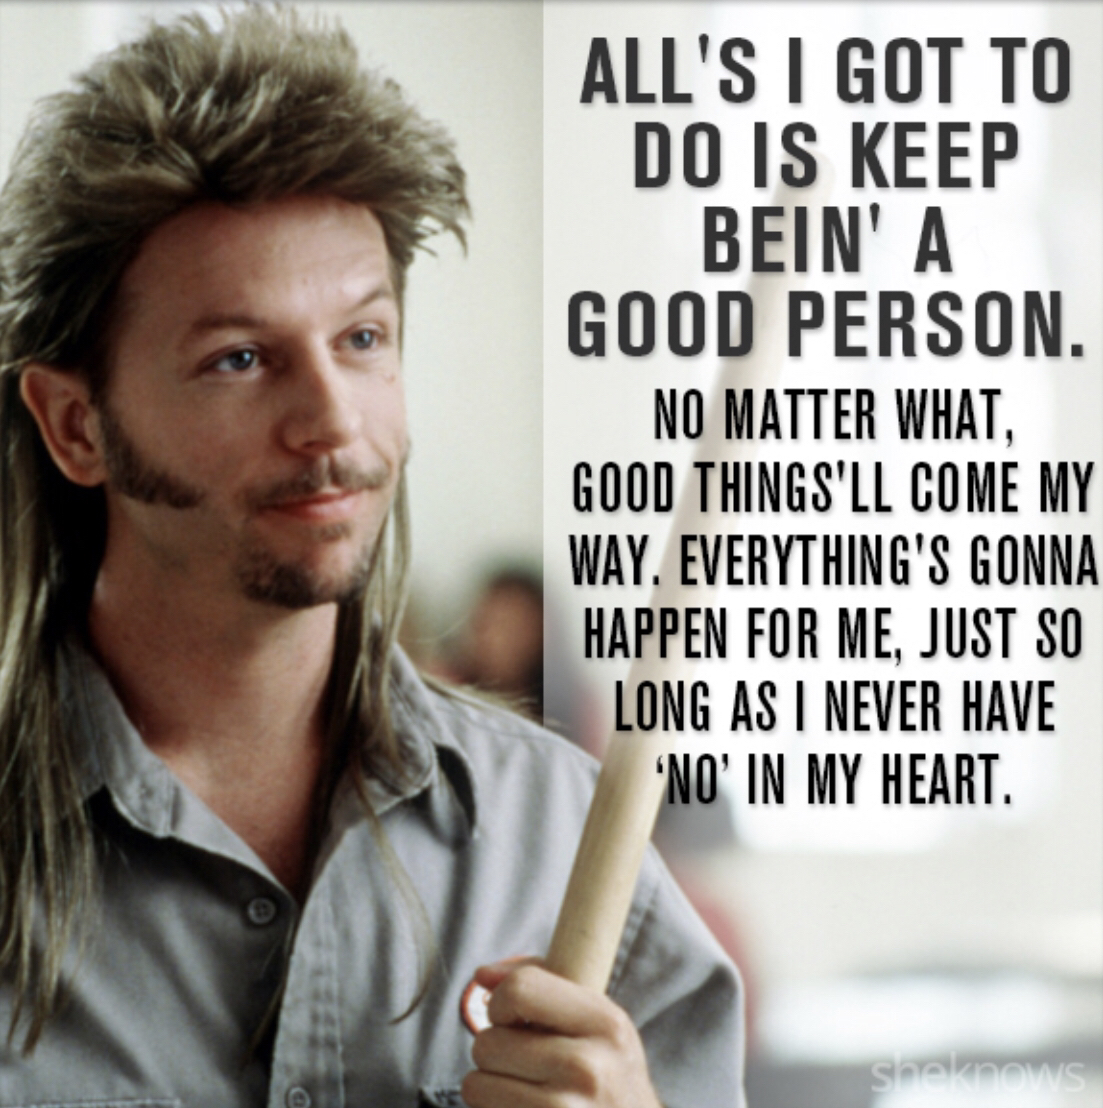 [Image] Joe Dirt had the right idea: positive affirmations, positive thoughts